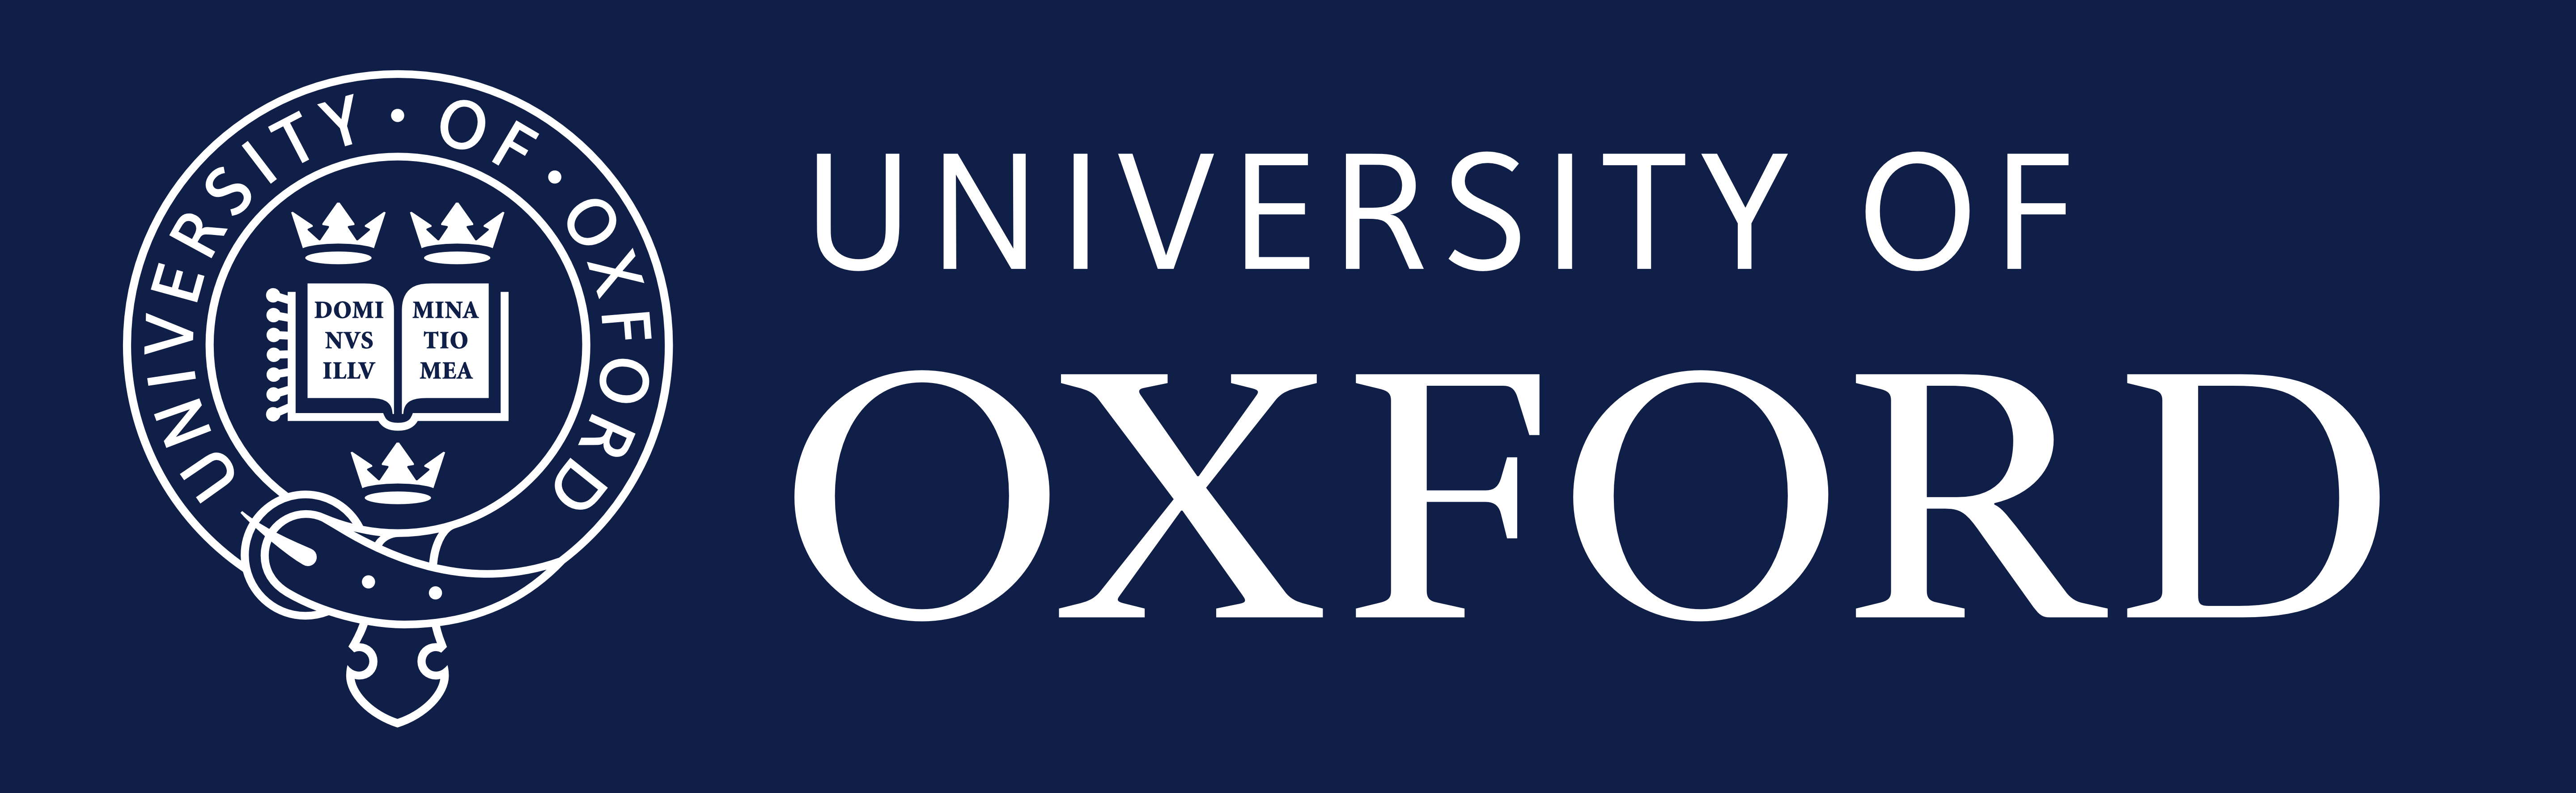 oxford dphil thesis regulations